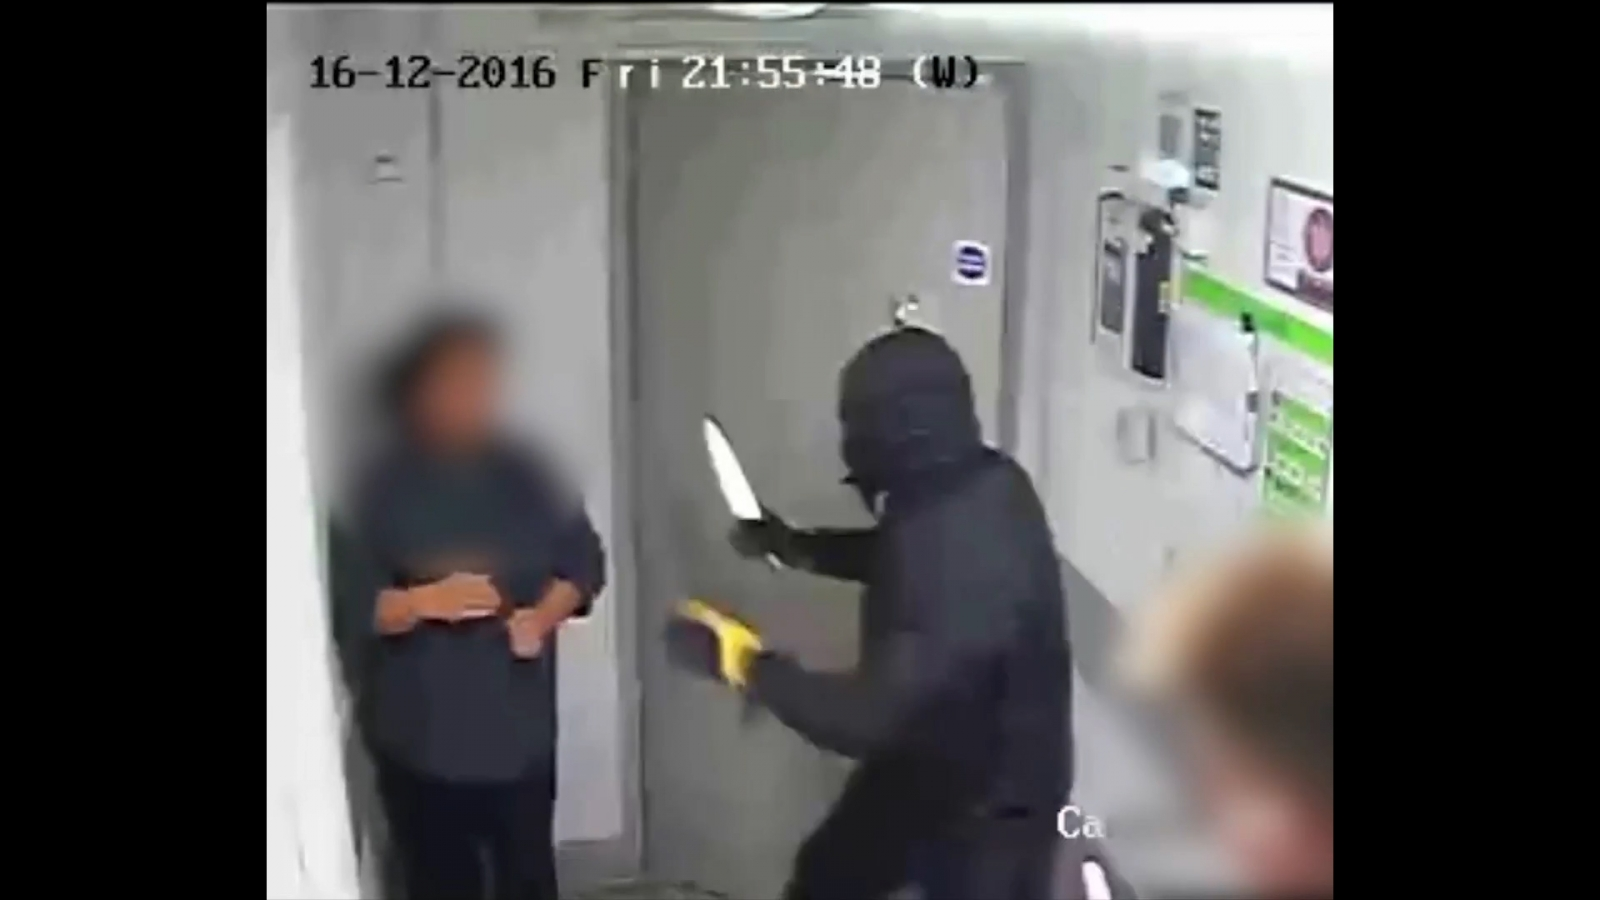 Shocking CCTV footage shows armed robbery in Brighton